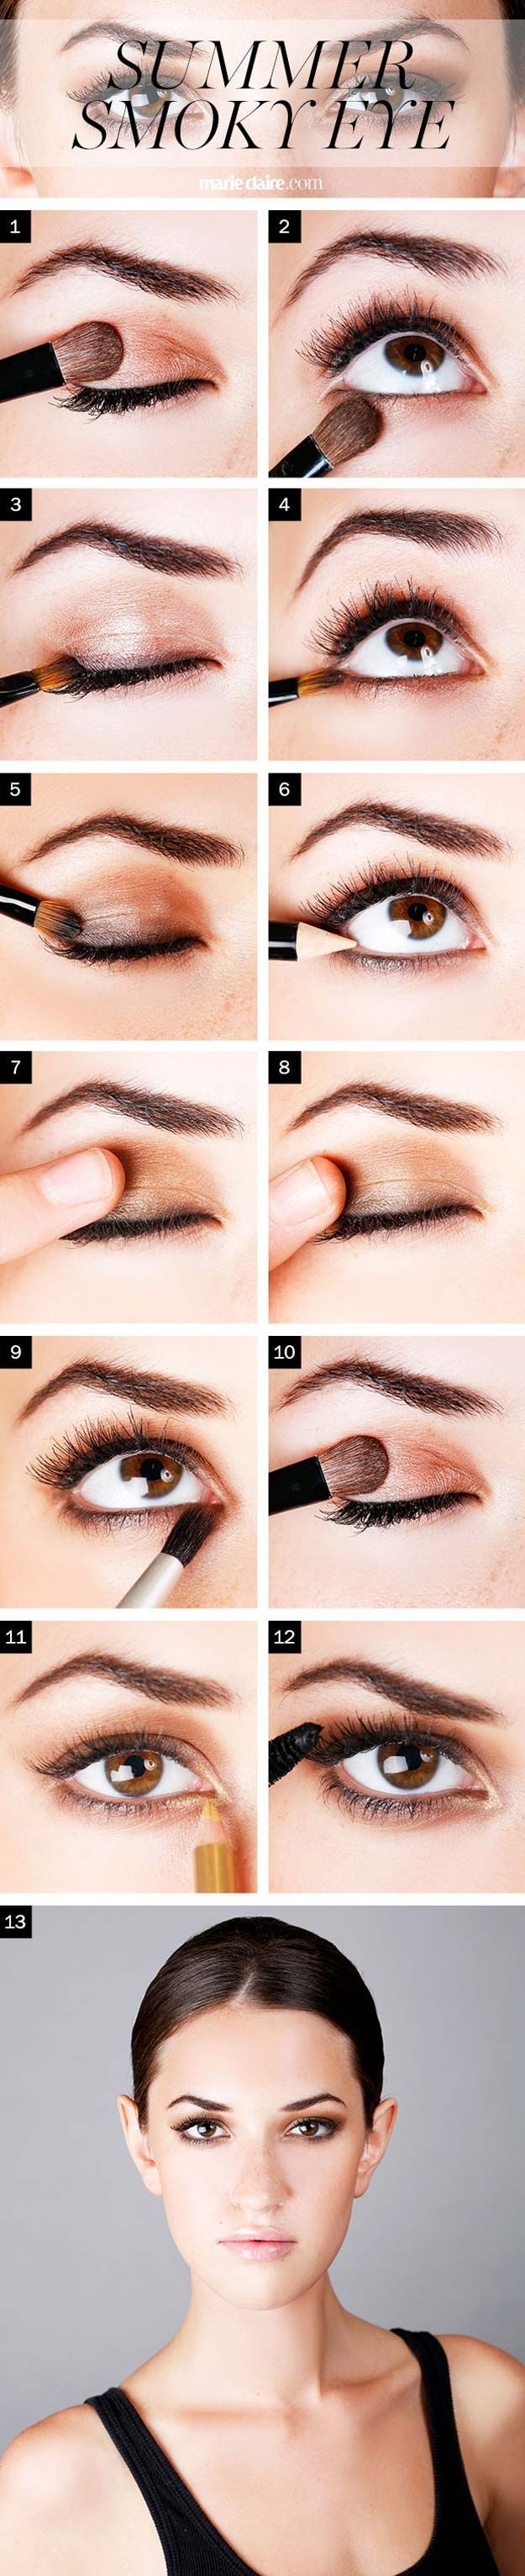 Sexy Eye Makeup Tutorials - Bronze Smoky Eye - Easy Guides on How To Do Smokey Looks and Look like one of the Linda Hallberg Bombshells - Sexy Looks for Brown, Blue, Hazel and Green Eyes - Dramatic Looks For Blondes and Brunettes - thegoddess.com/sexy-eye-makeup-tutorials